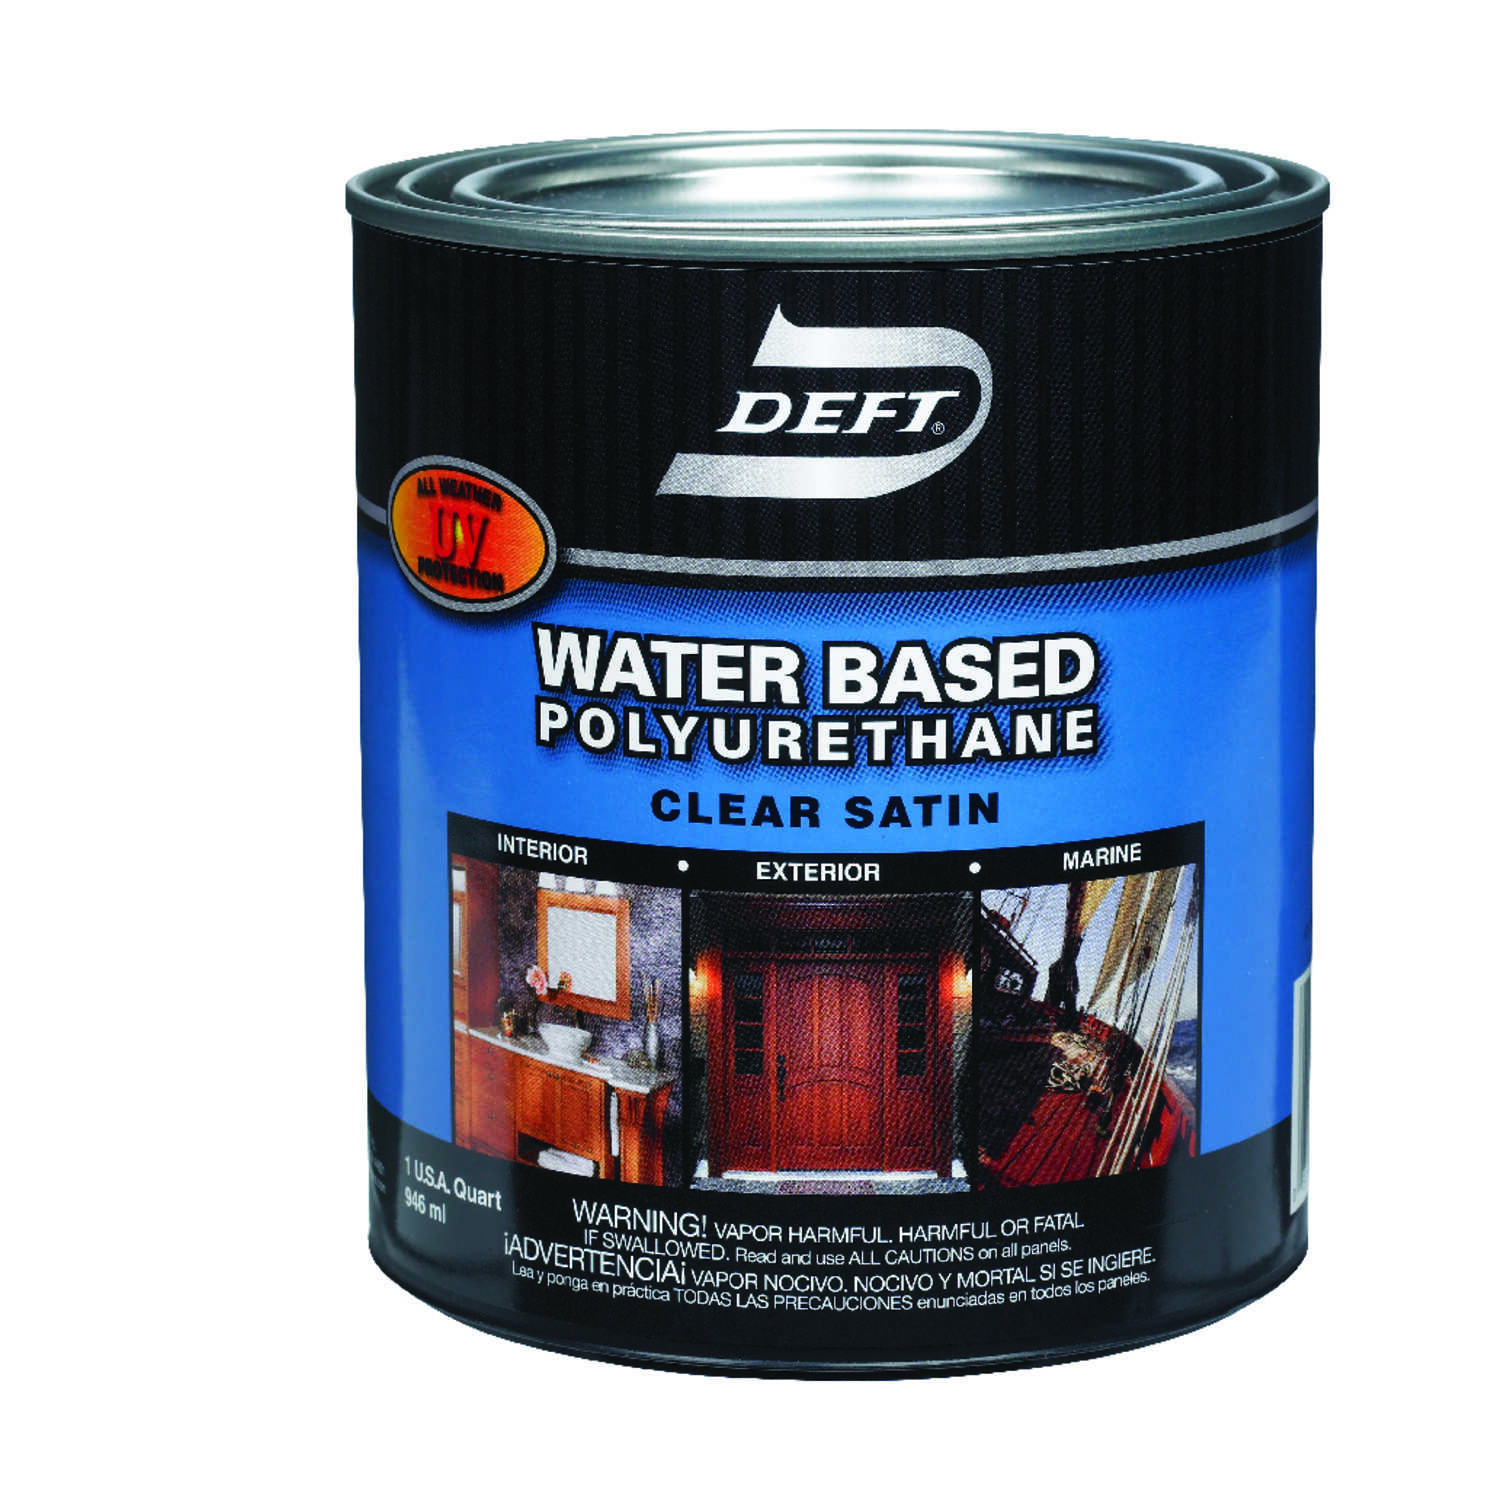 Deft  Water Based Polyurethane  Satin  Waterborne Wood Finish  Clear  1 qt.